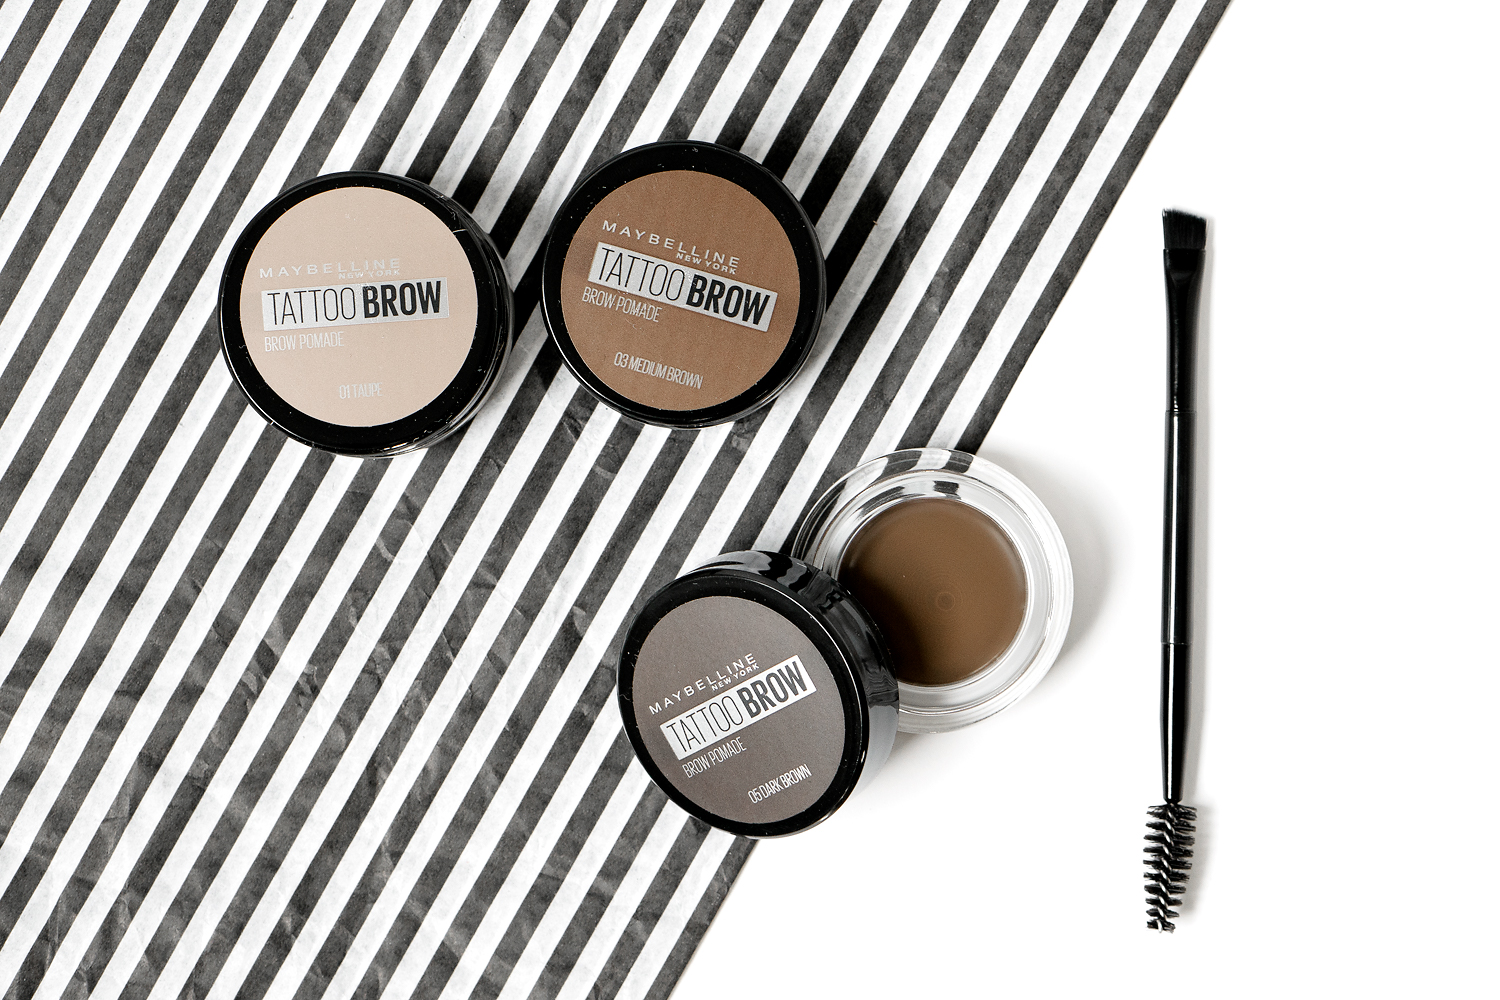 maybelline tattoo brow pomade